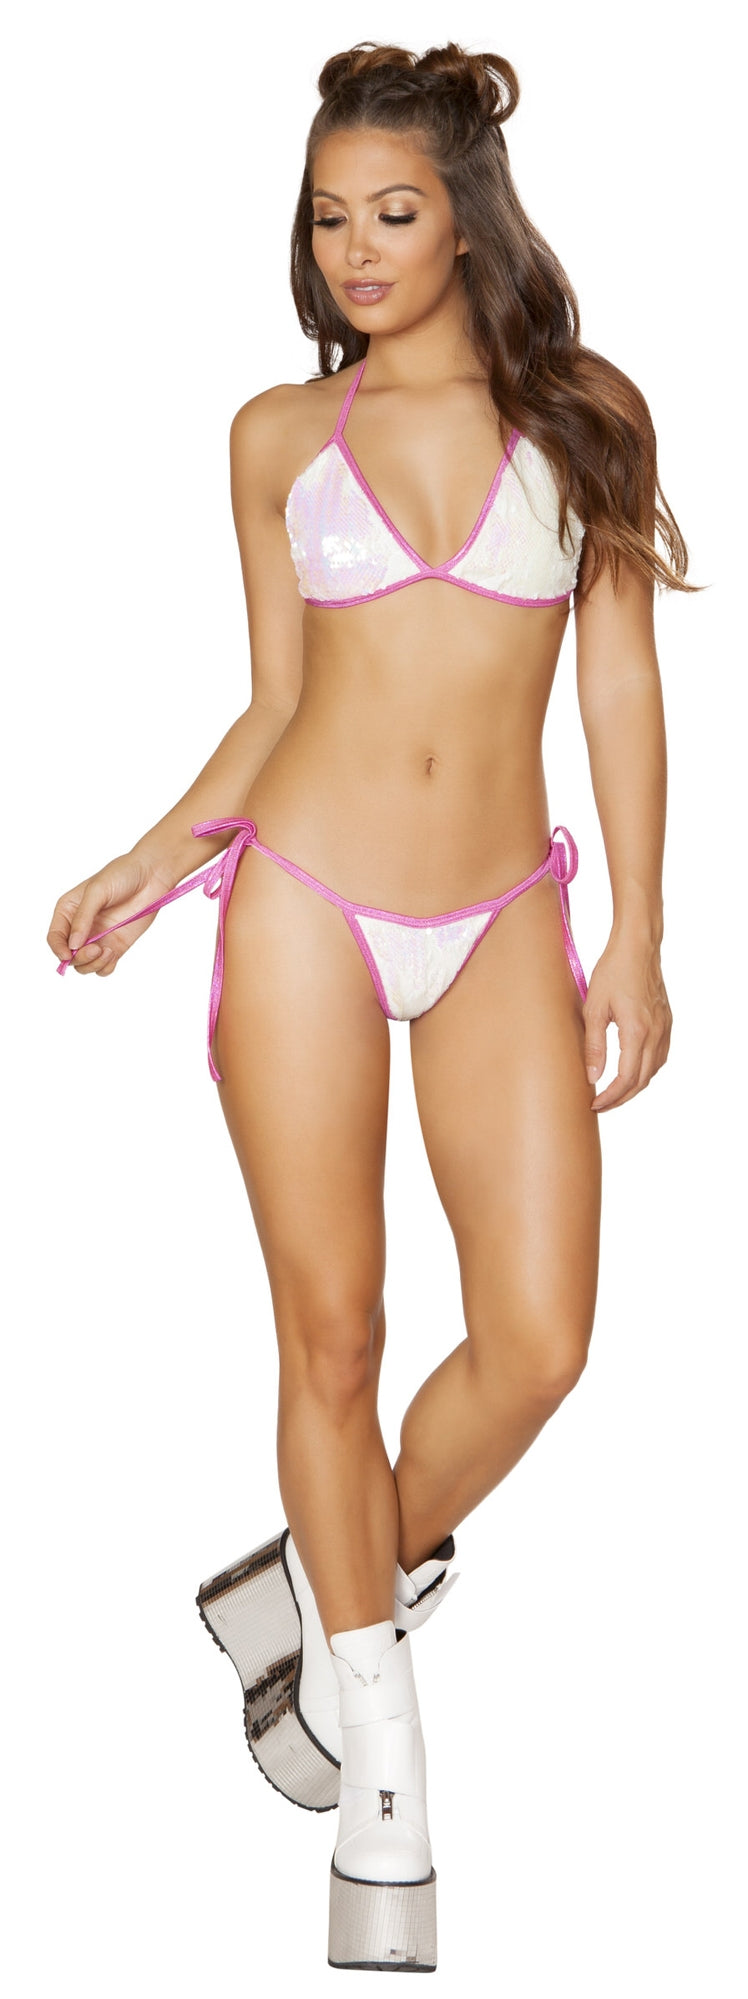 RM-3625-WP White pink low rise tie side sequin bikini front